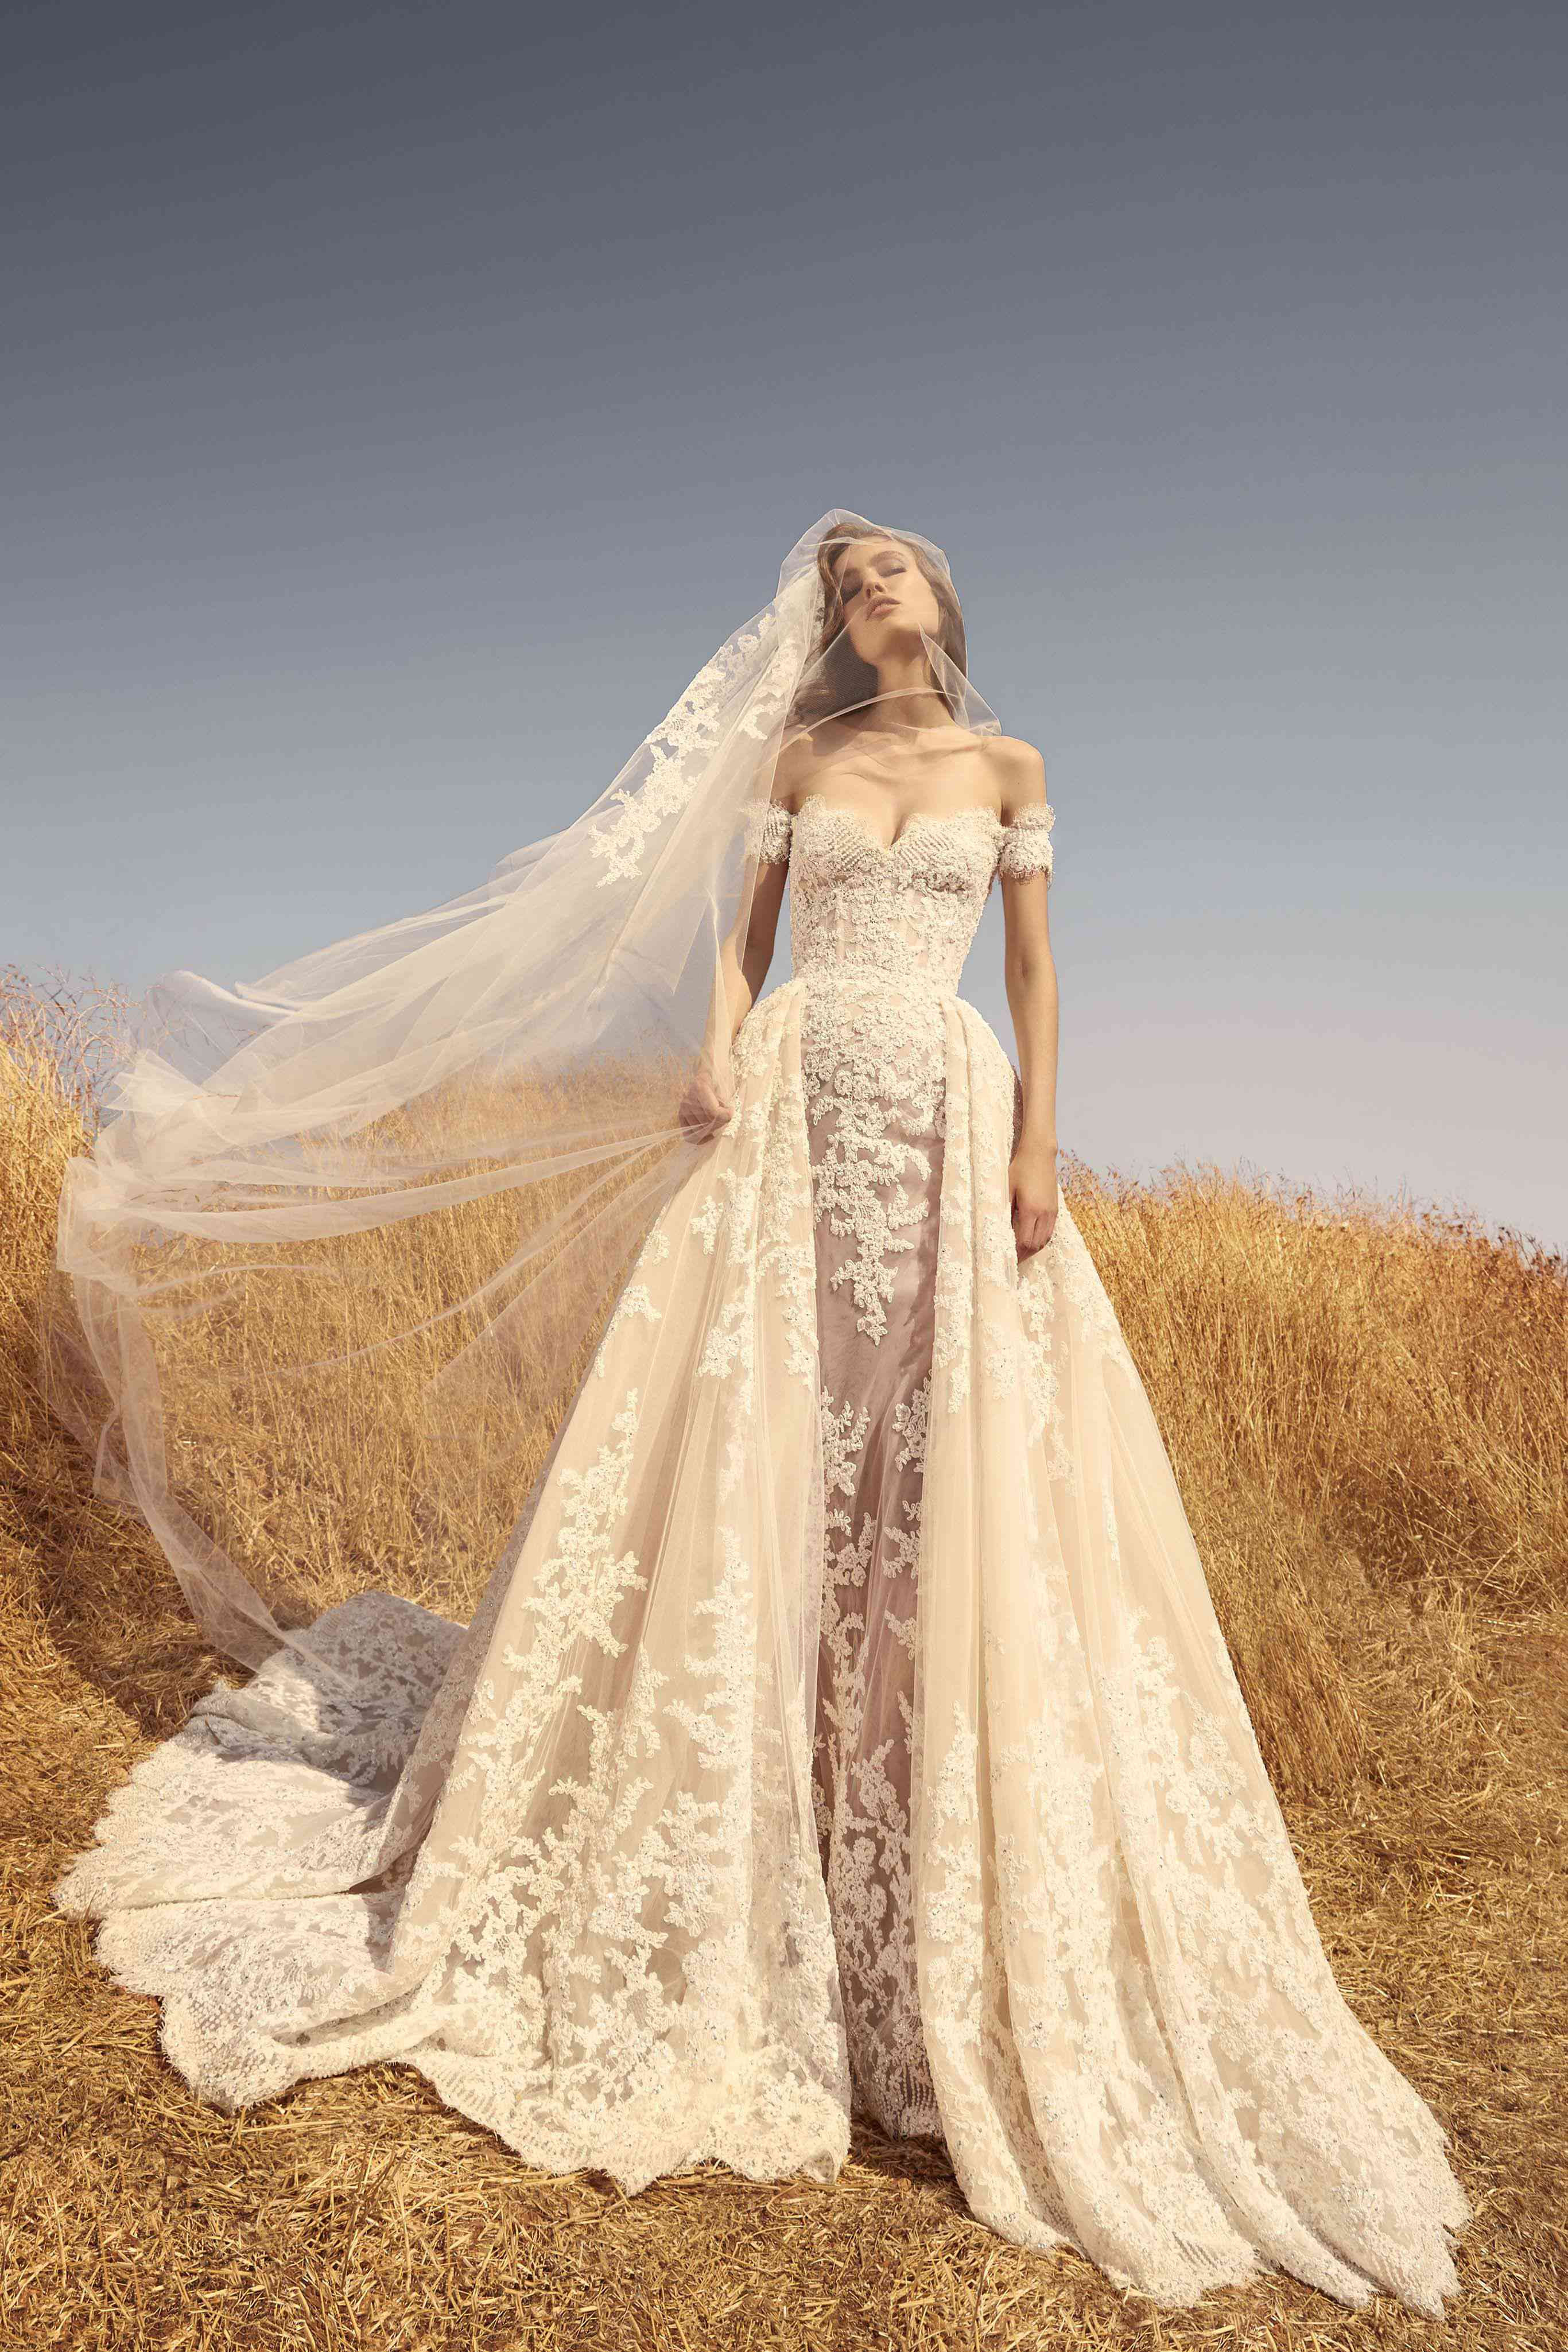 Model in n off-shoulder shell tulle dress decorated with embroidered off-white lace appliqués and a matching veil